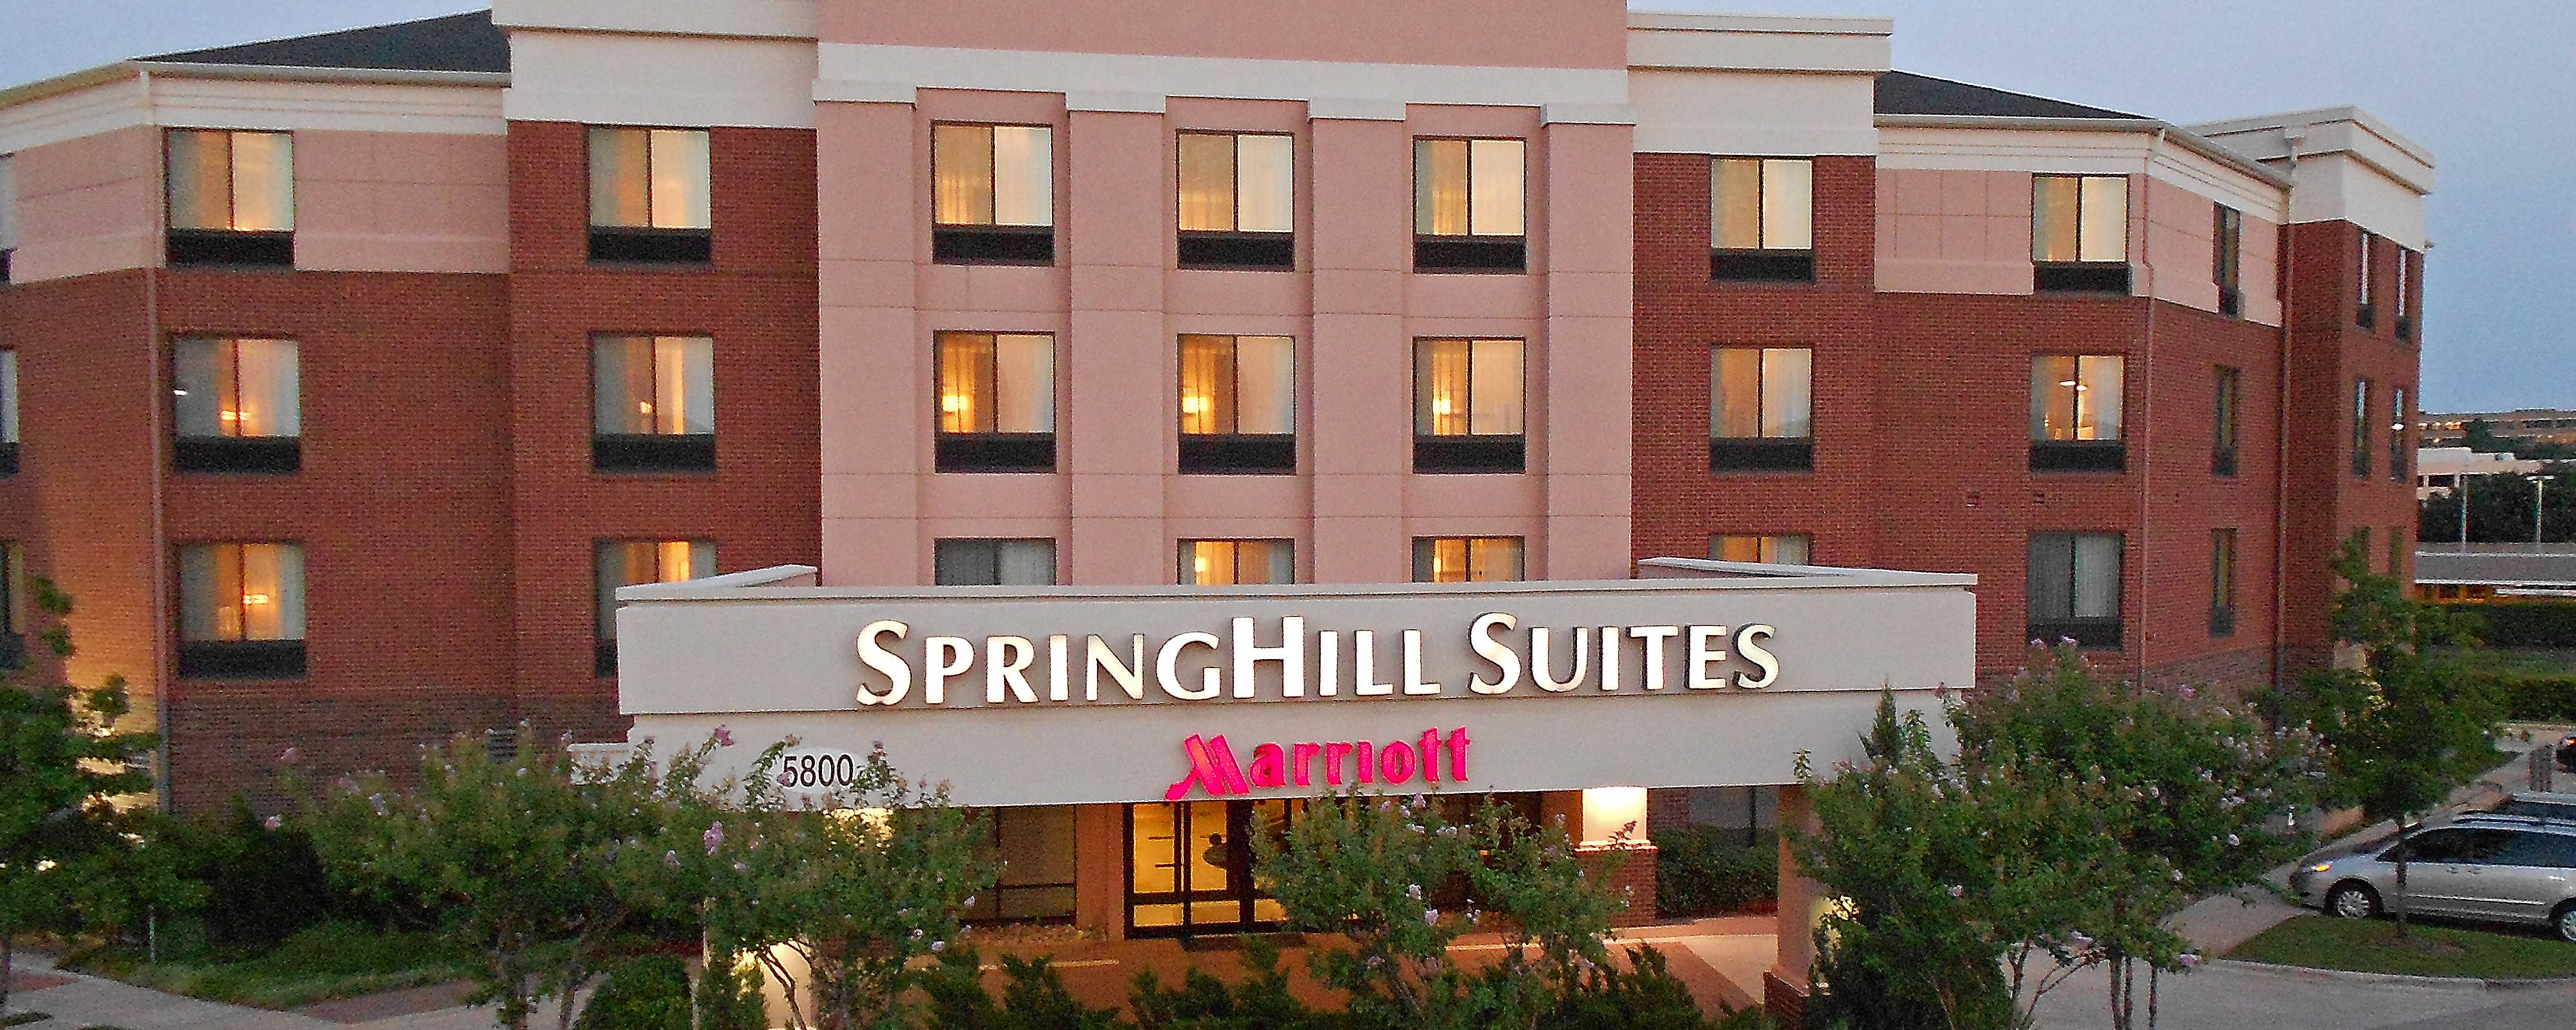 Dallas Airport Hotels >> Dfw Airport Hotels Springhill Suites Dallas Dfw Airport East Las